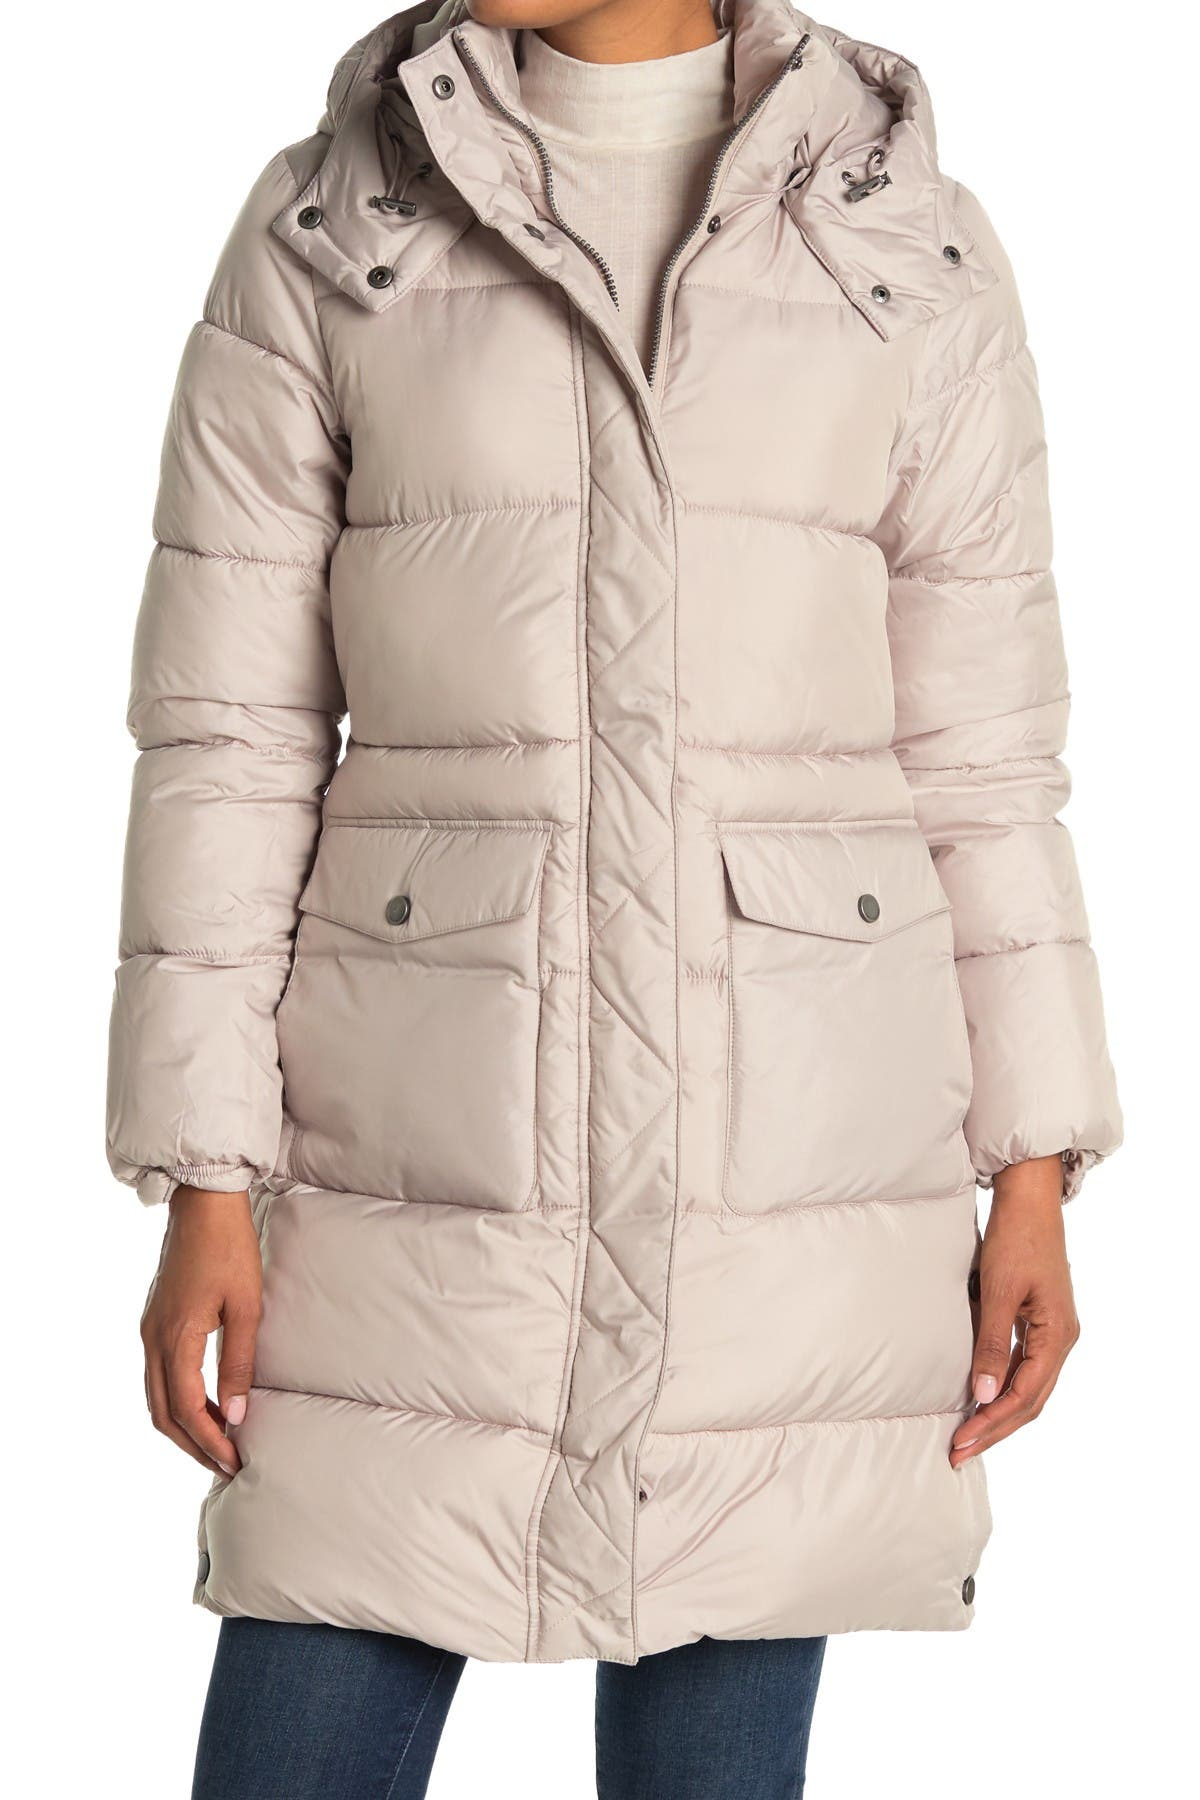 Image of Lucky Brand Missy Hooded Quilted Jacket